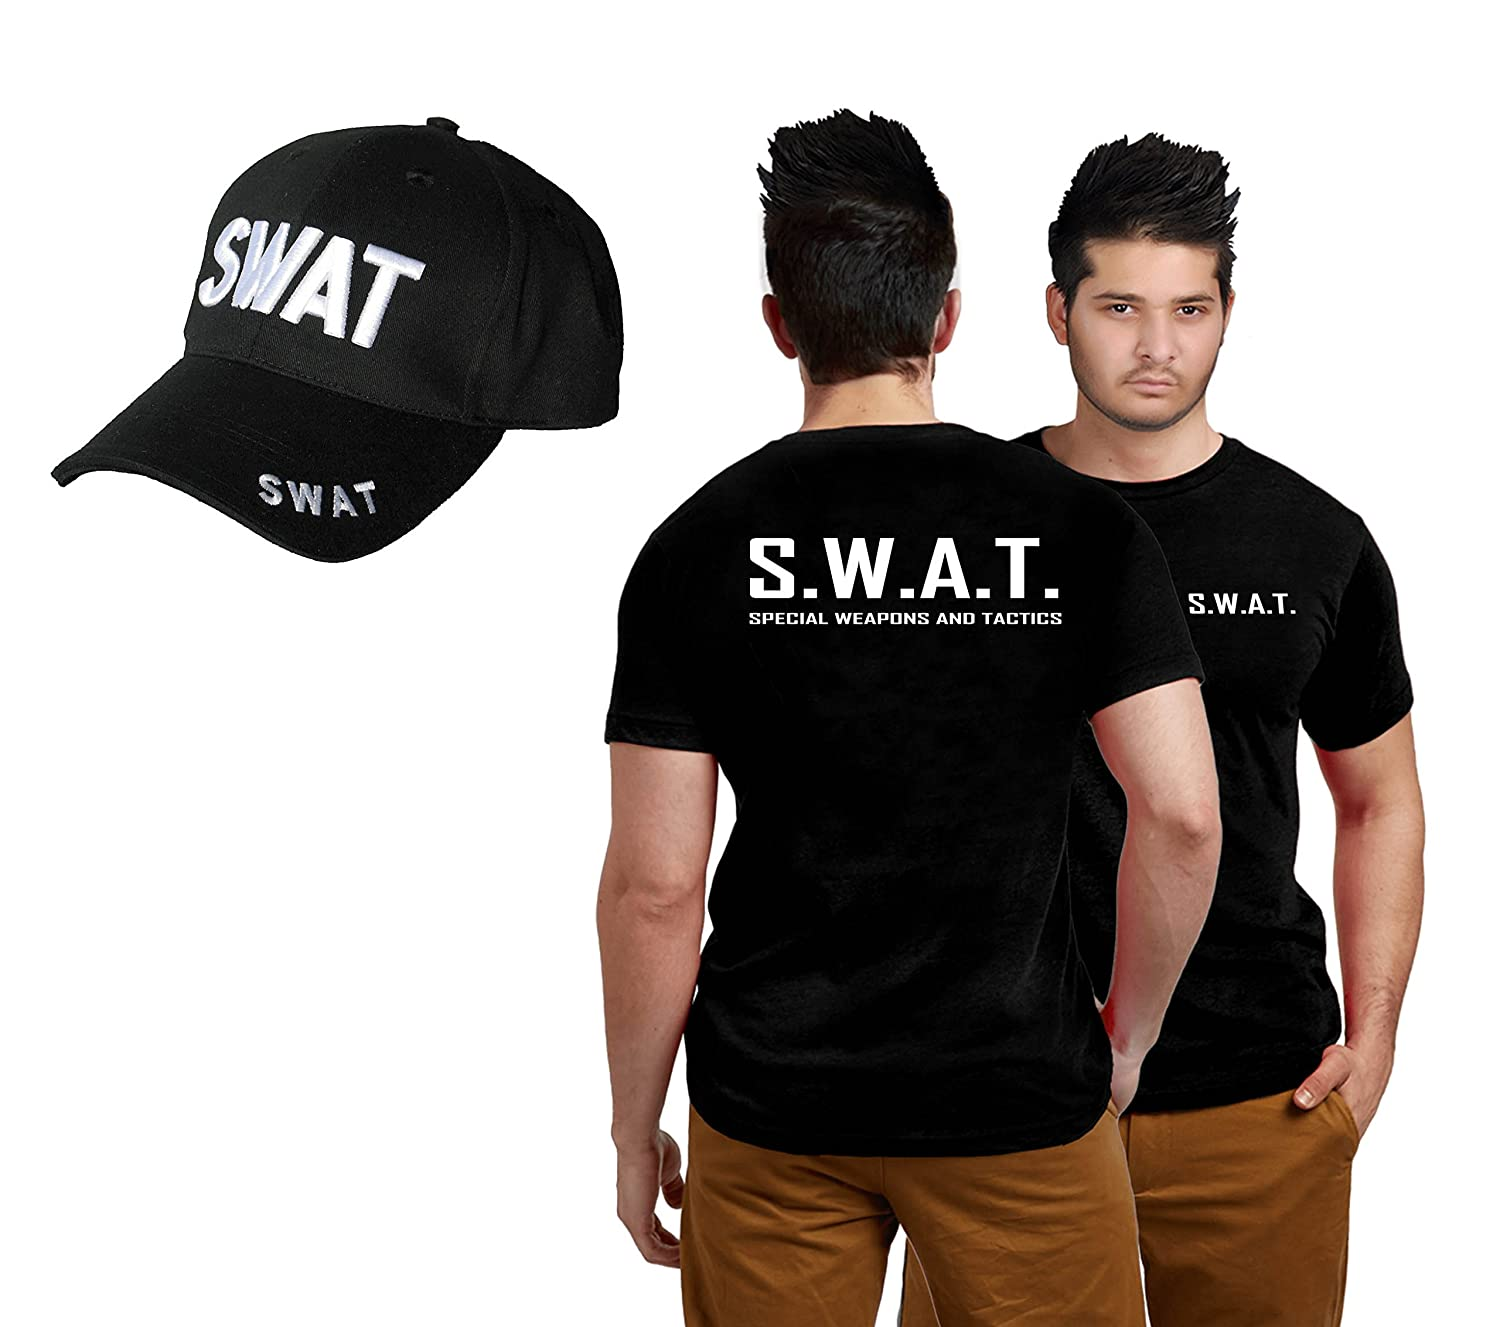 Amazon.com Wicked Fun Adult Swat Team T-Shirt u0026 Cap Set Kit Fancy Dress Costume Police Fbi Tactical Military (Men ) Clothing  sc 1 st  Amazon.com & Amazon.com: Wicked Fun Adult Swat Team T-Shirt u0026 Cap Set Kit Fancy ...